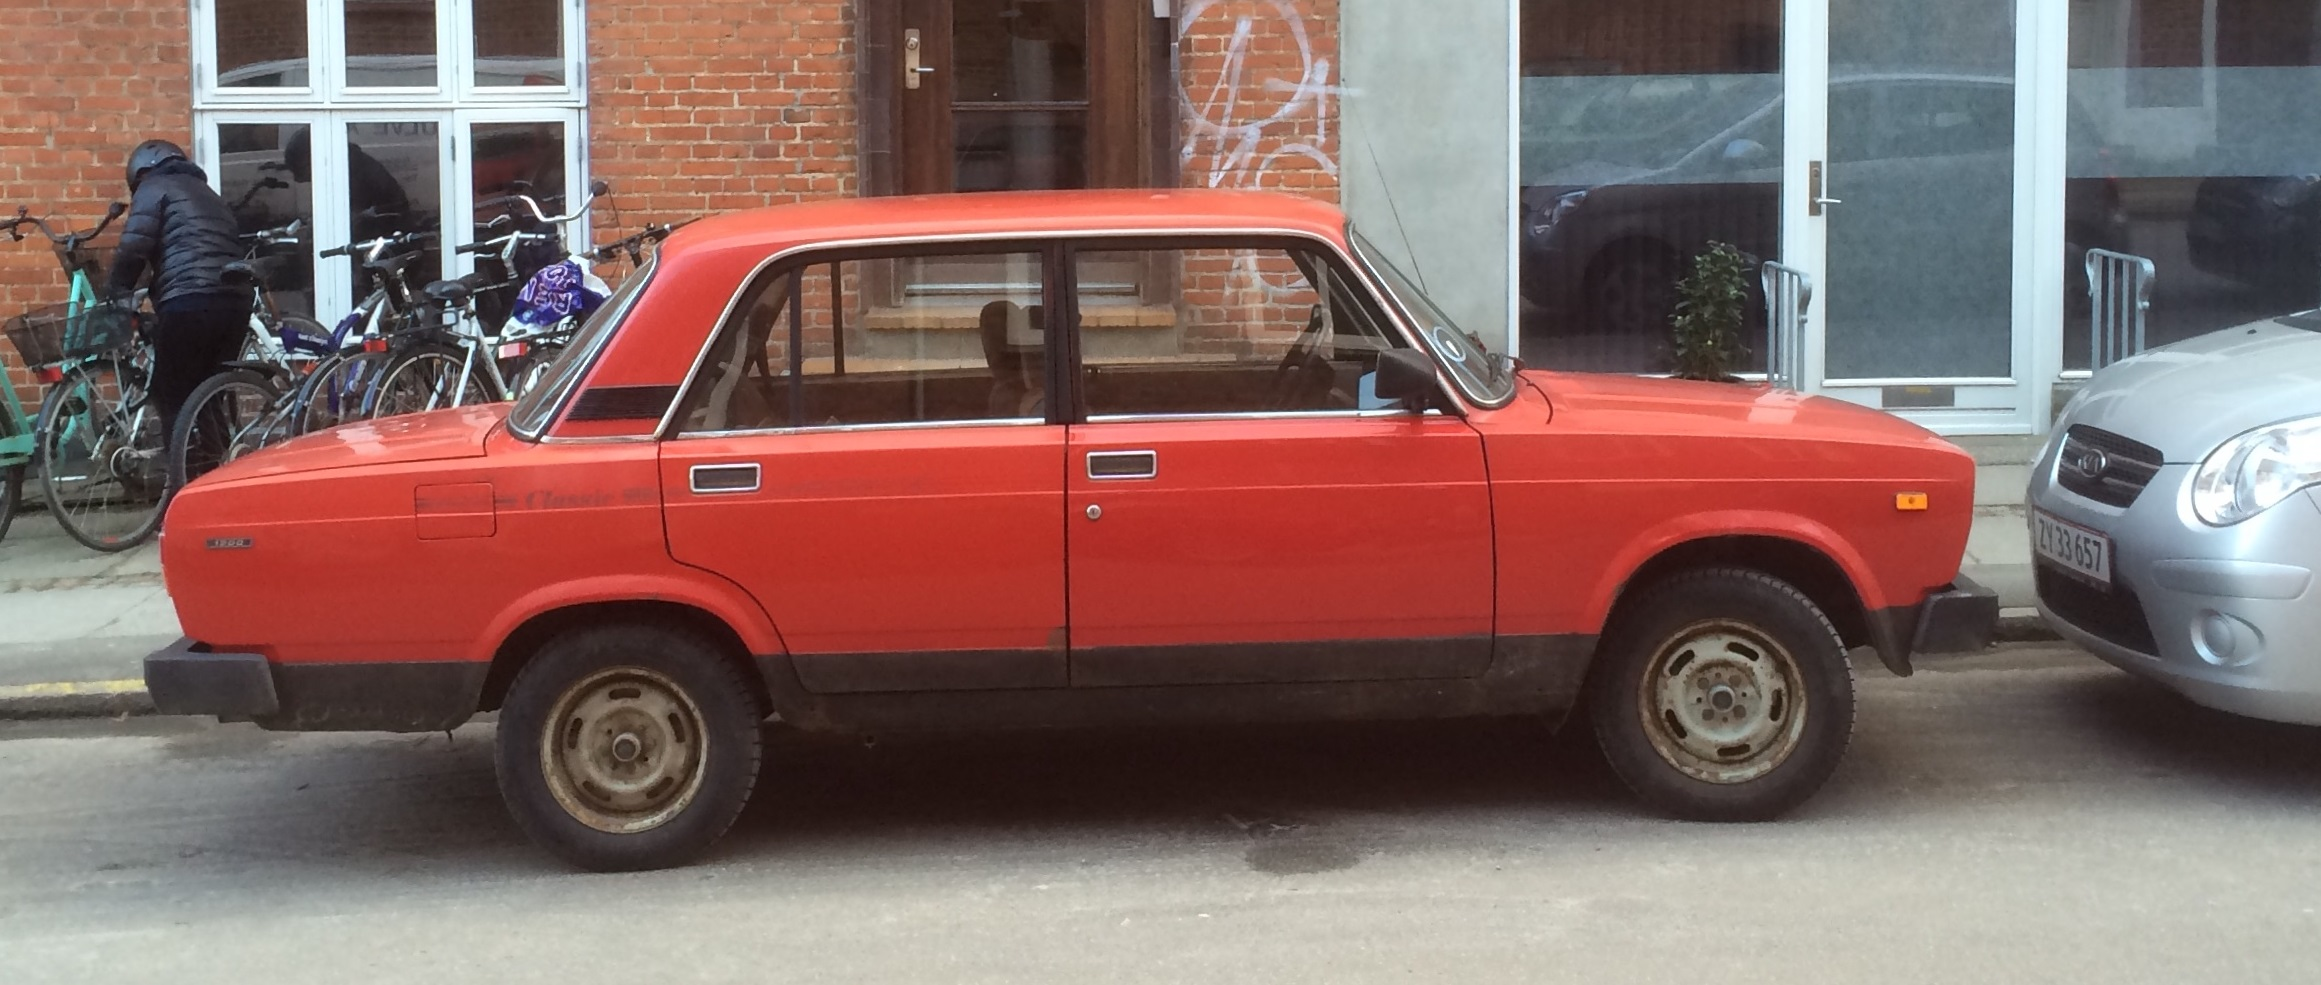 A photo for Sunday: 1979-2011 Lada 2105 Classic